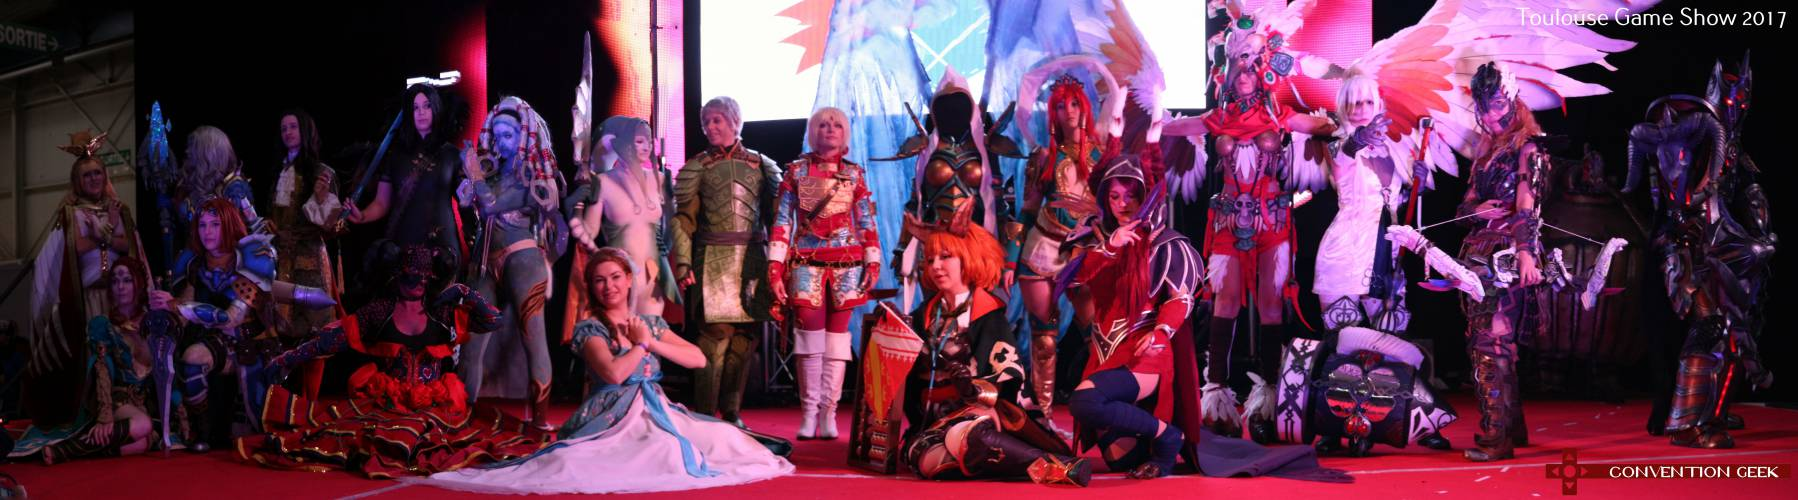 2017-toulouse-game-show-cosplay.jpg